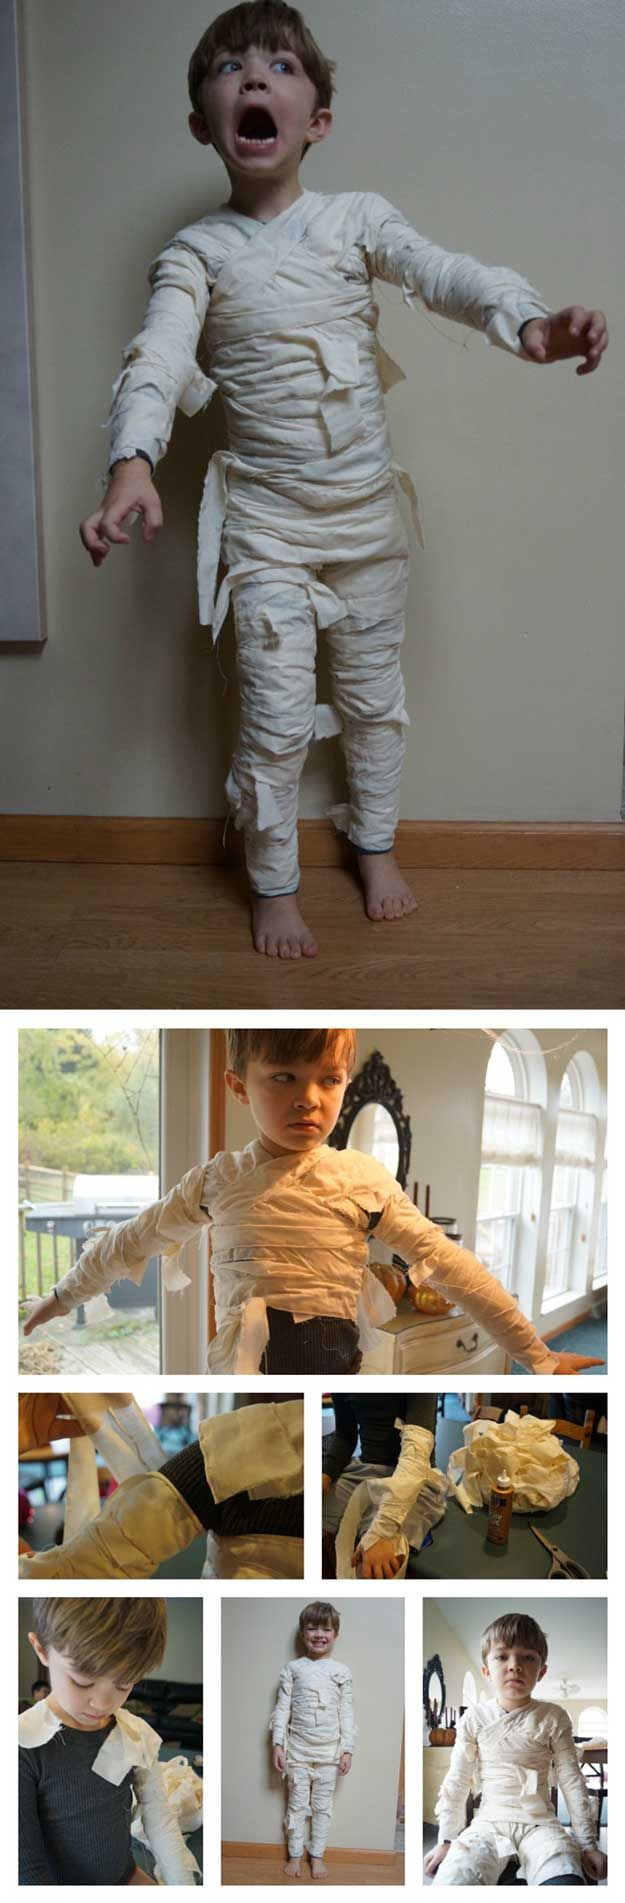 Check out 9 DIY Mummy Costume Ideas at https://diyprojects.com/diy-mummy-costume-ideas/